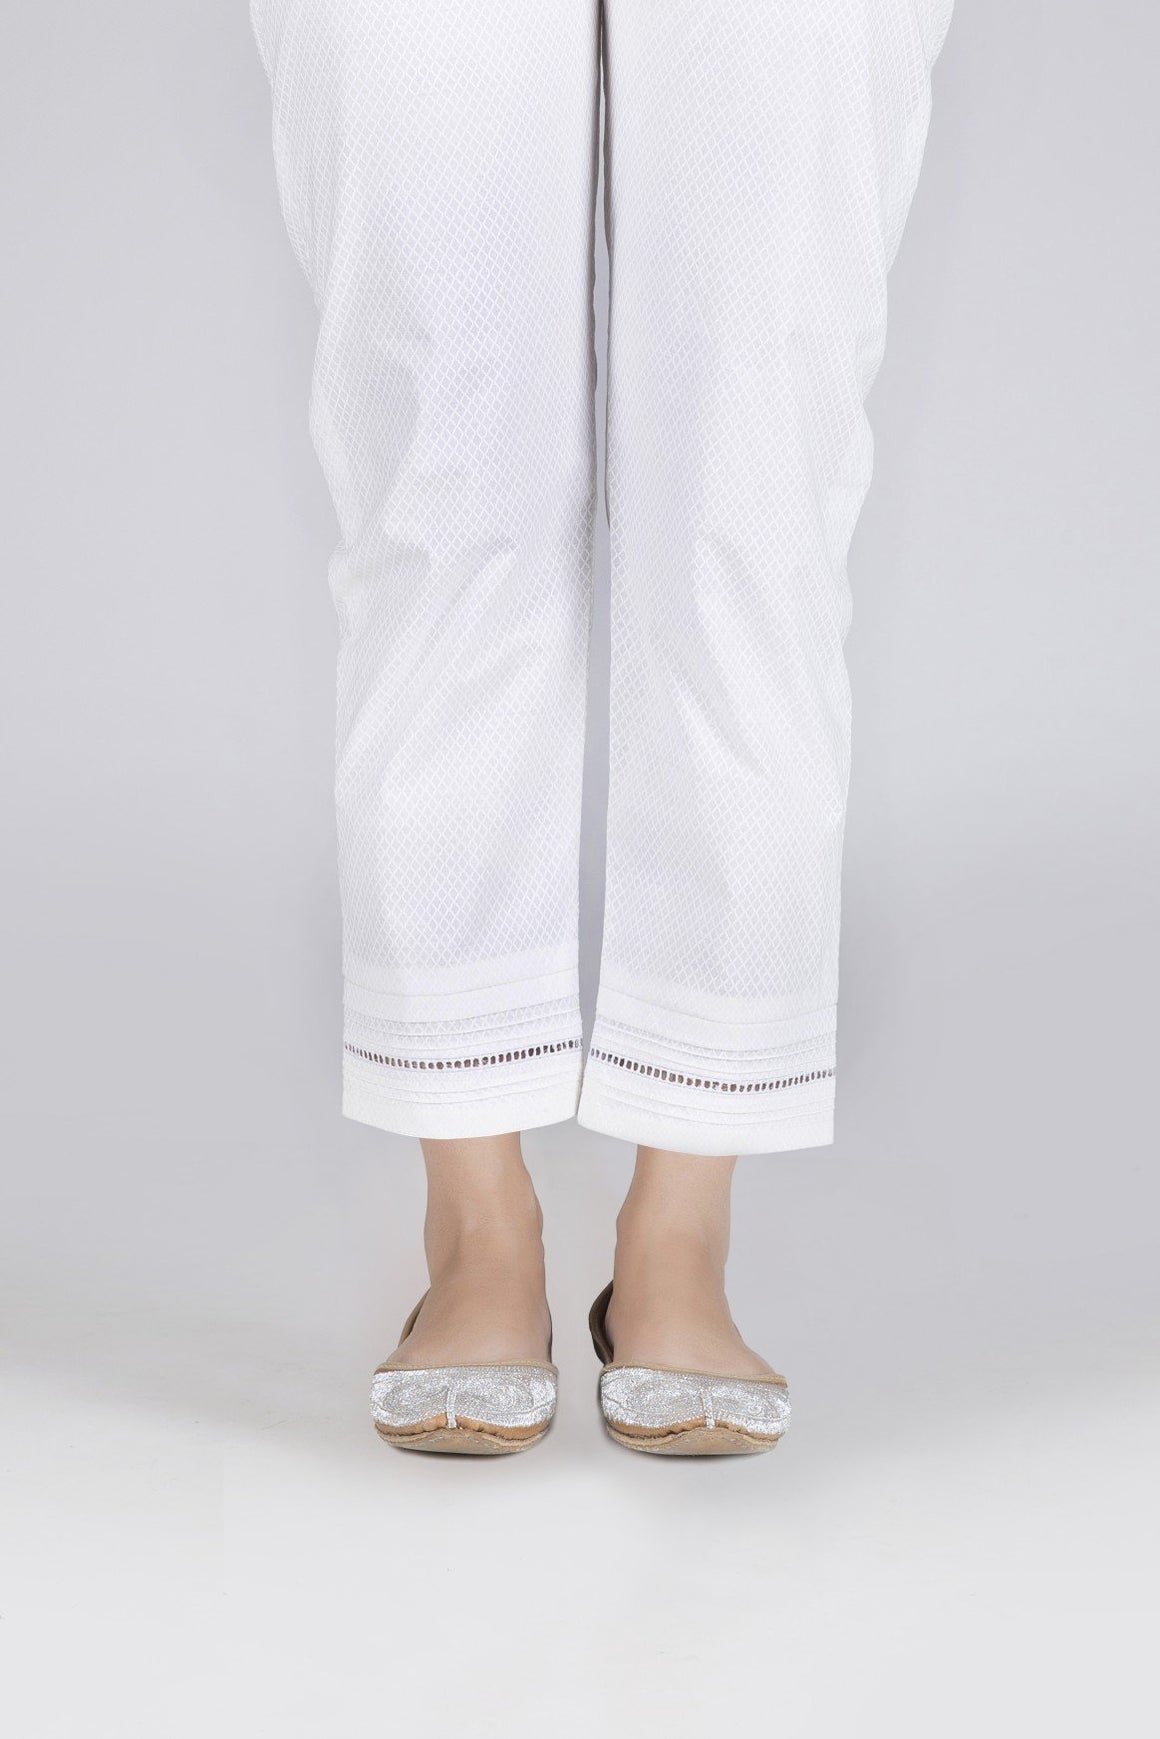 Bonanza Satrangi - Off-White Unstitched Trouser